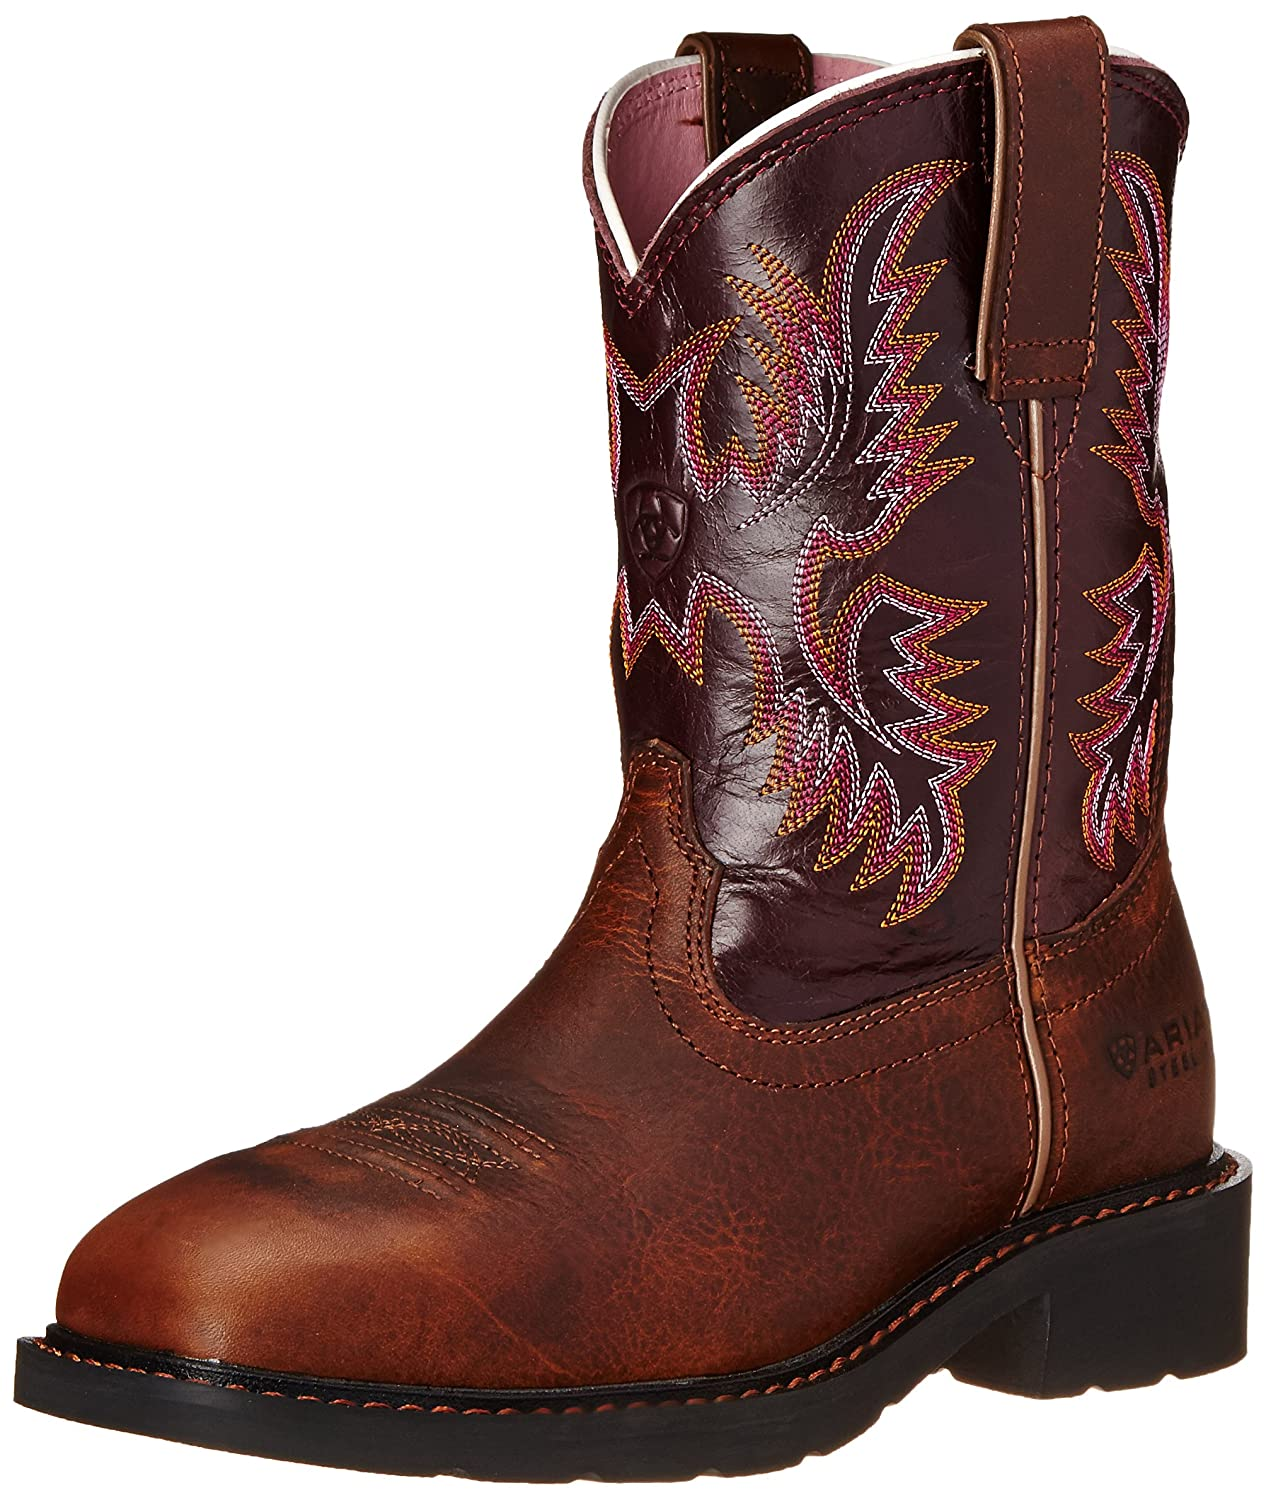 Ariat Women's Krista Pull-on Steel Toe Western Cowboy Boot B005M1Q5MO 6.5 B(M) US|Dark Tan